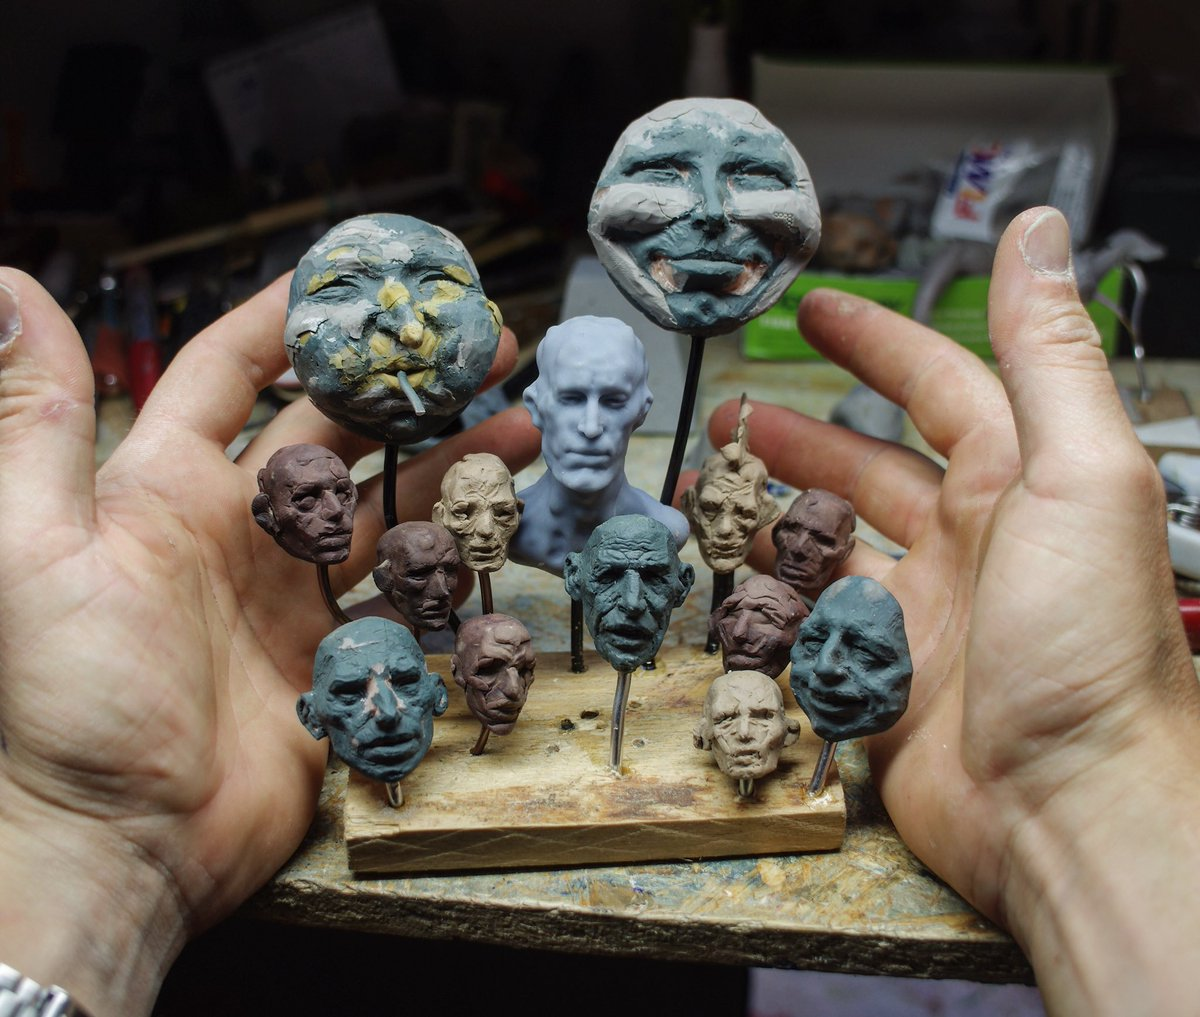 A collection of small head sketches . The one in the middle was my test print from January. 5 min head sketch in @oculusmedium then printed on my elegoo #3d #3dprint #analog #analogsculpture #digitalsculpt #traditionalart #traditionalsculpture #sculpture #art #modelage #clay pic.twitter.com/Yvirxapqr5